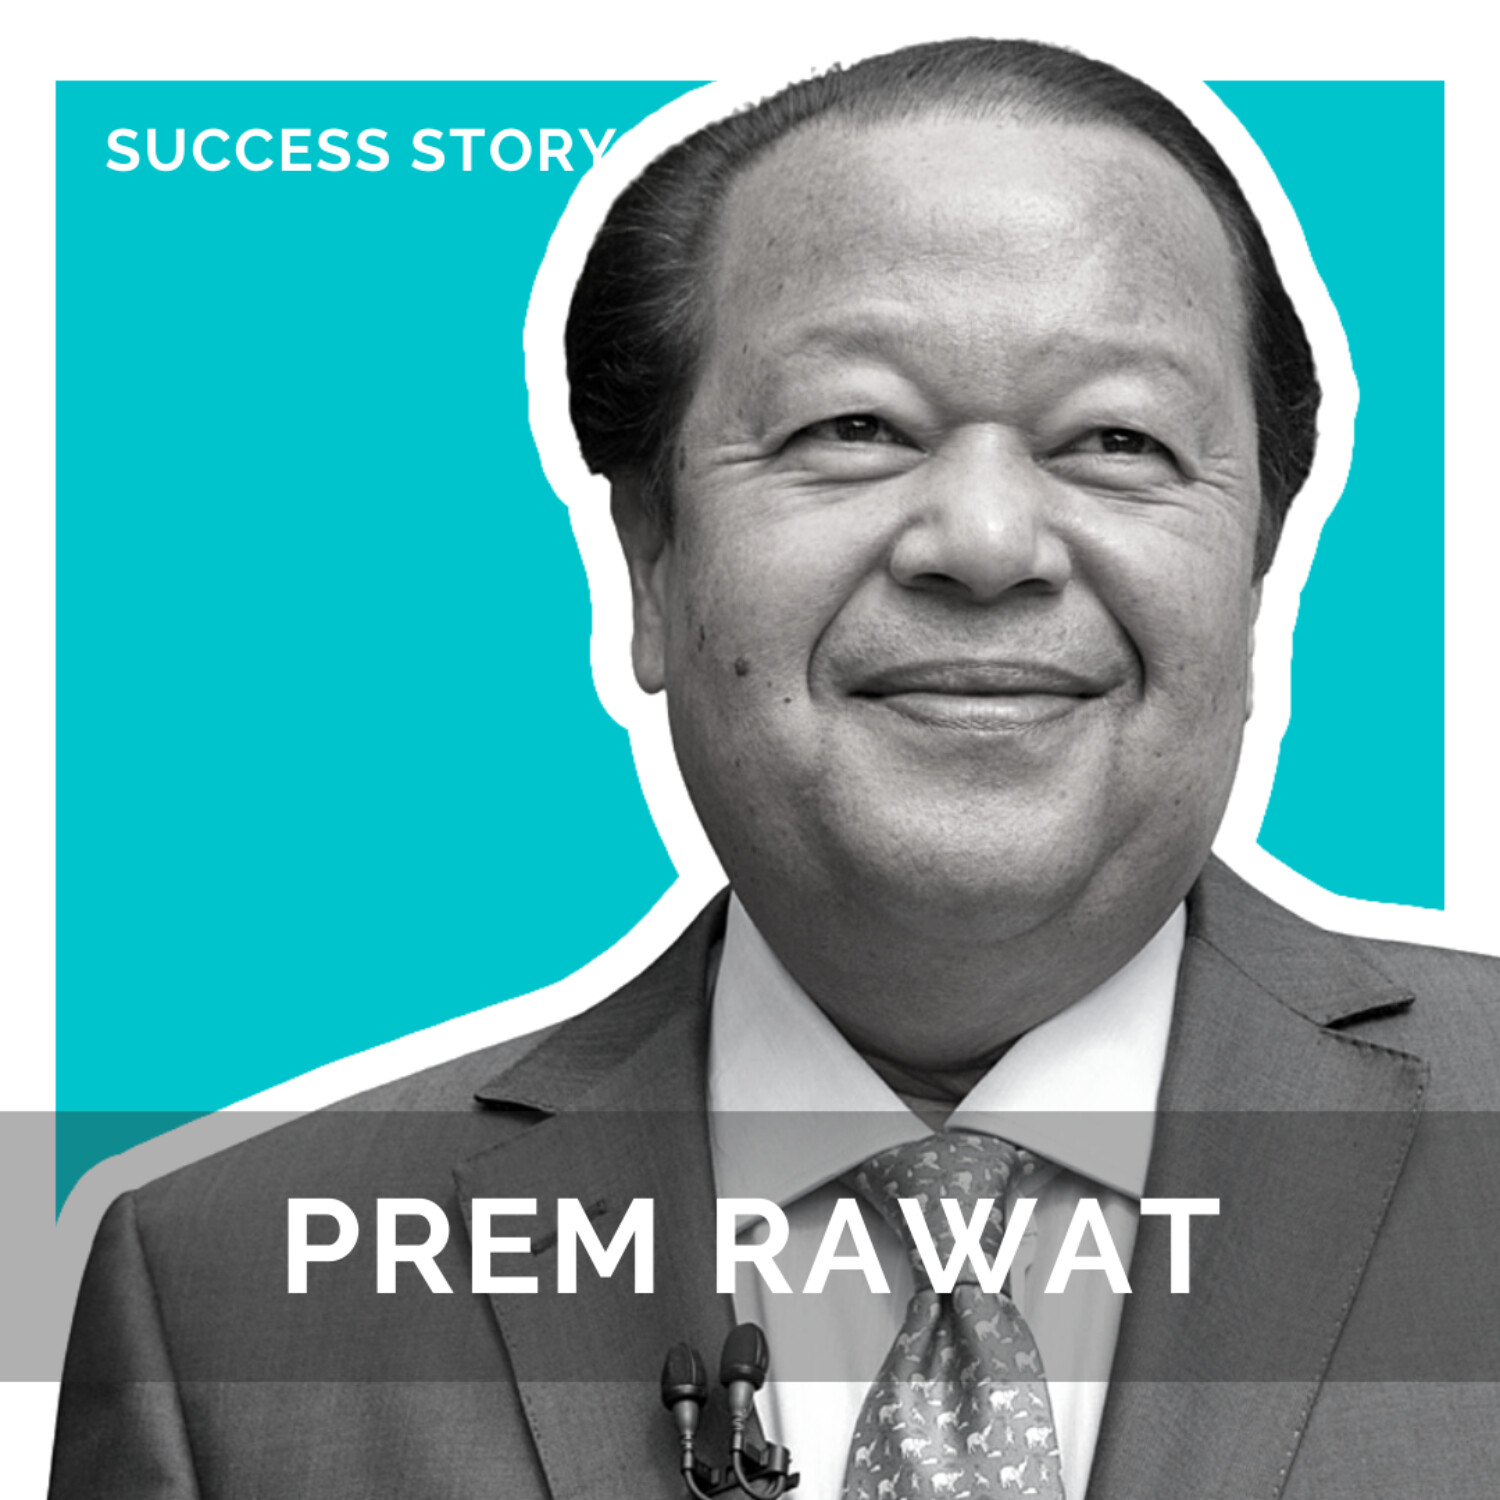 How to Find Peace With Prem Rawat, Global Peace Ambassador and Speaker